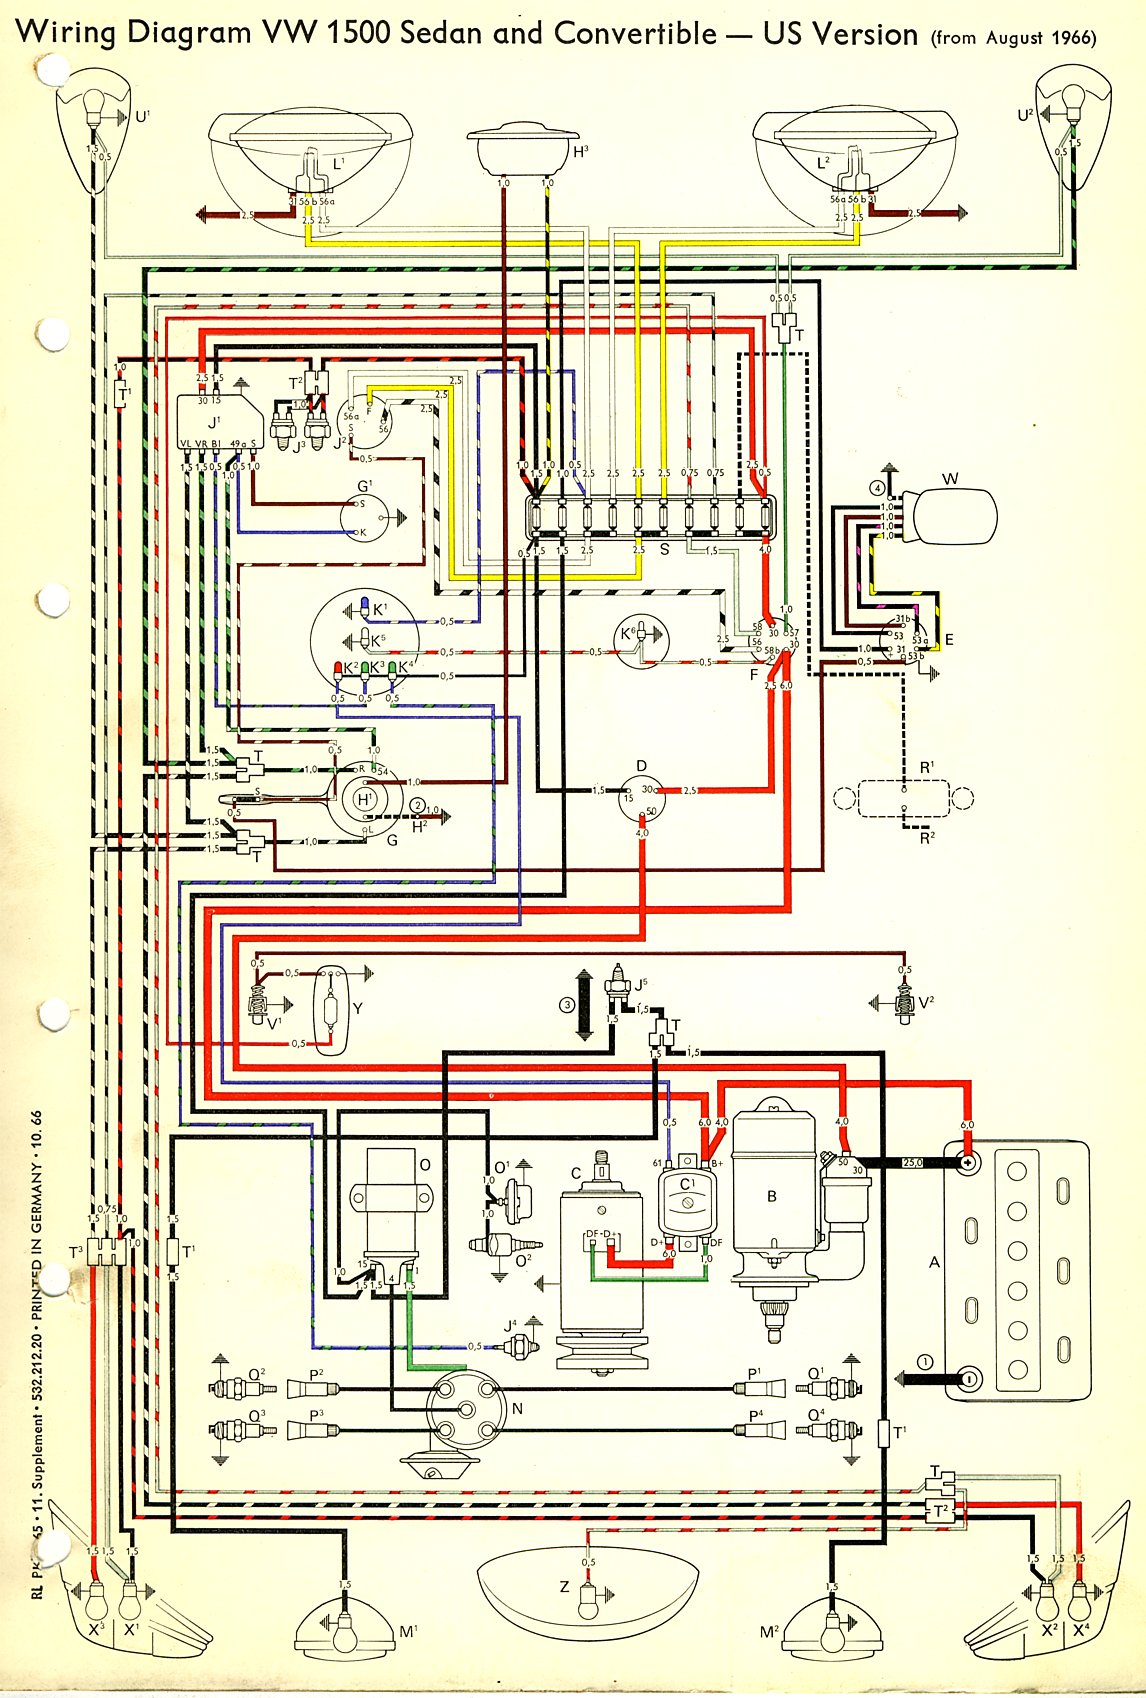 70 vw wiring diagram thesamba.com :: type 1 wiring diagrams